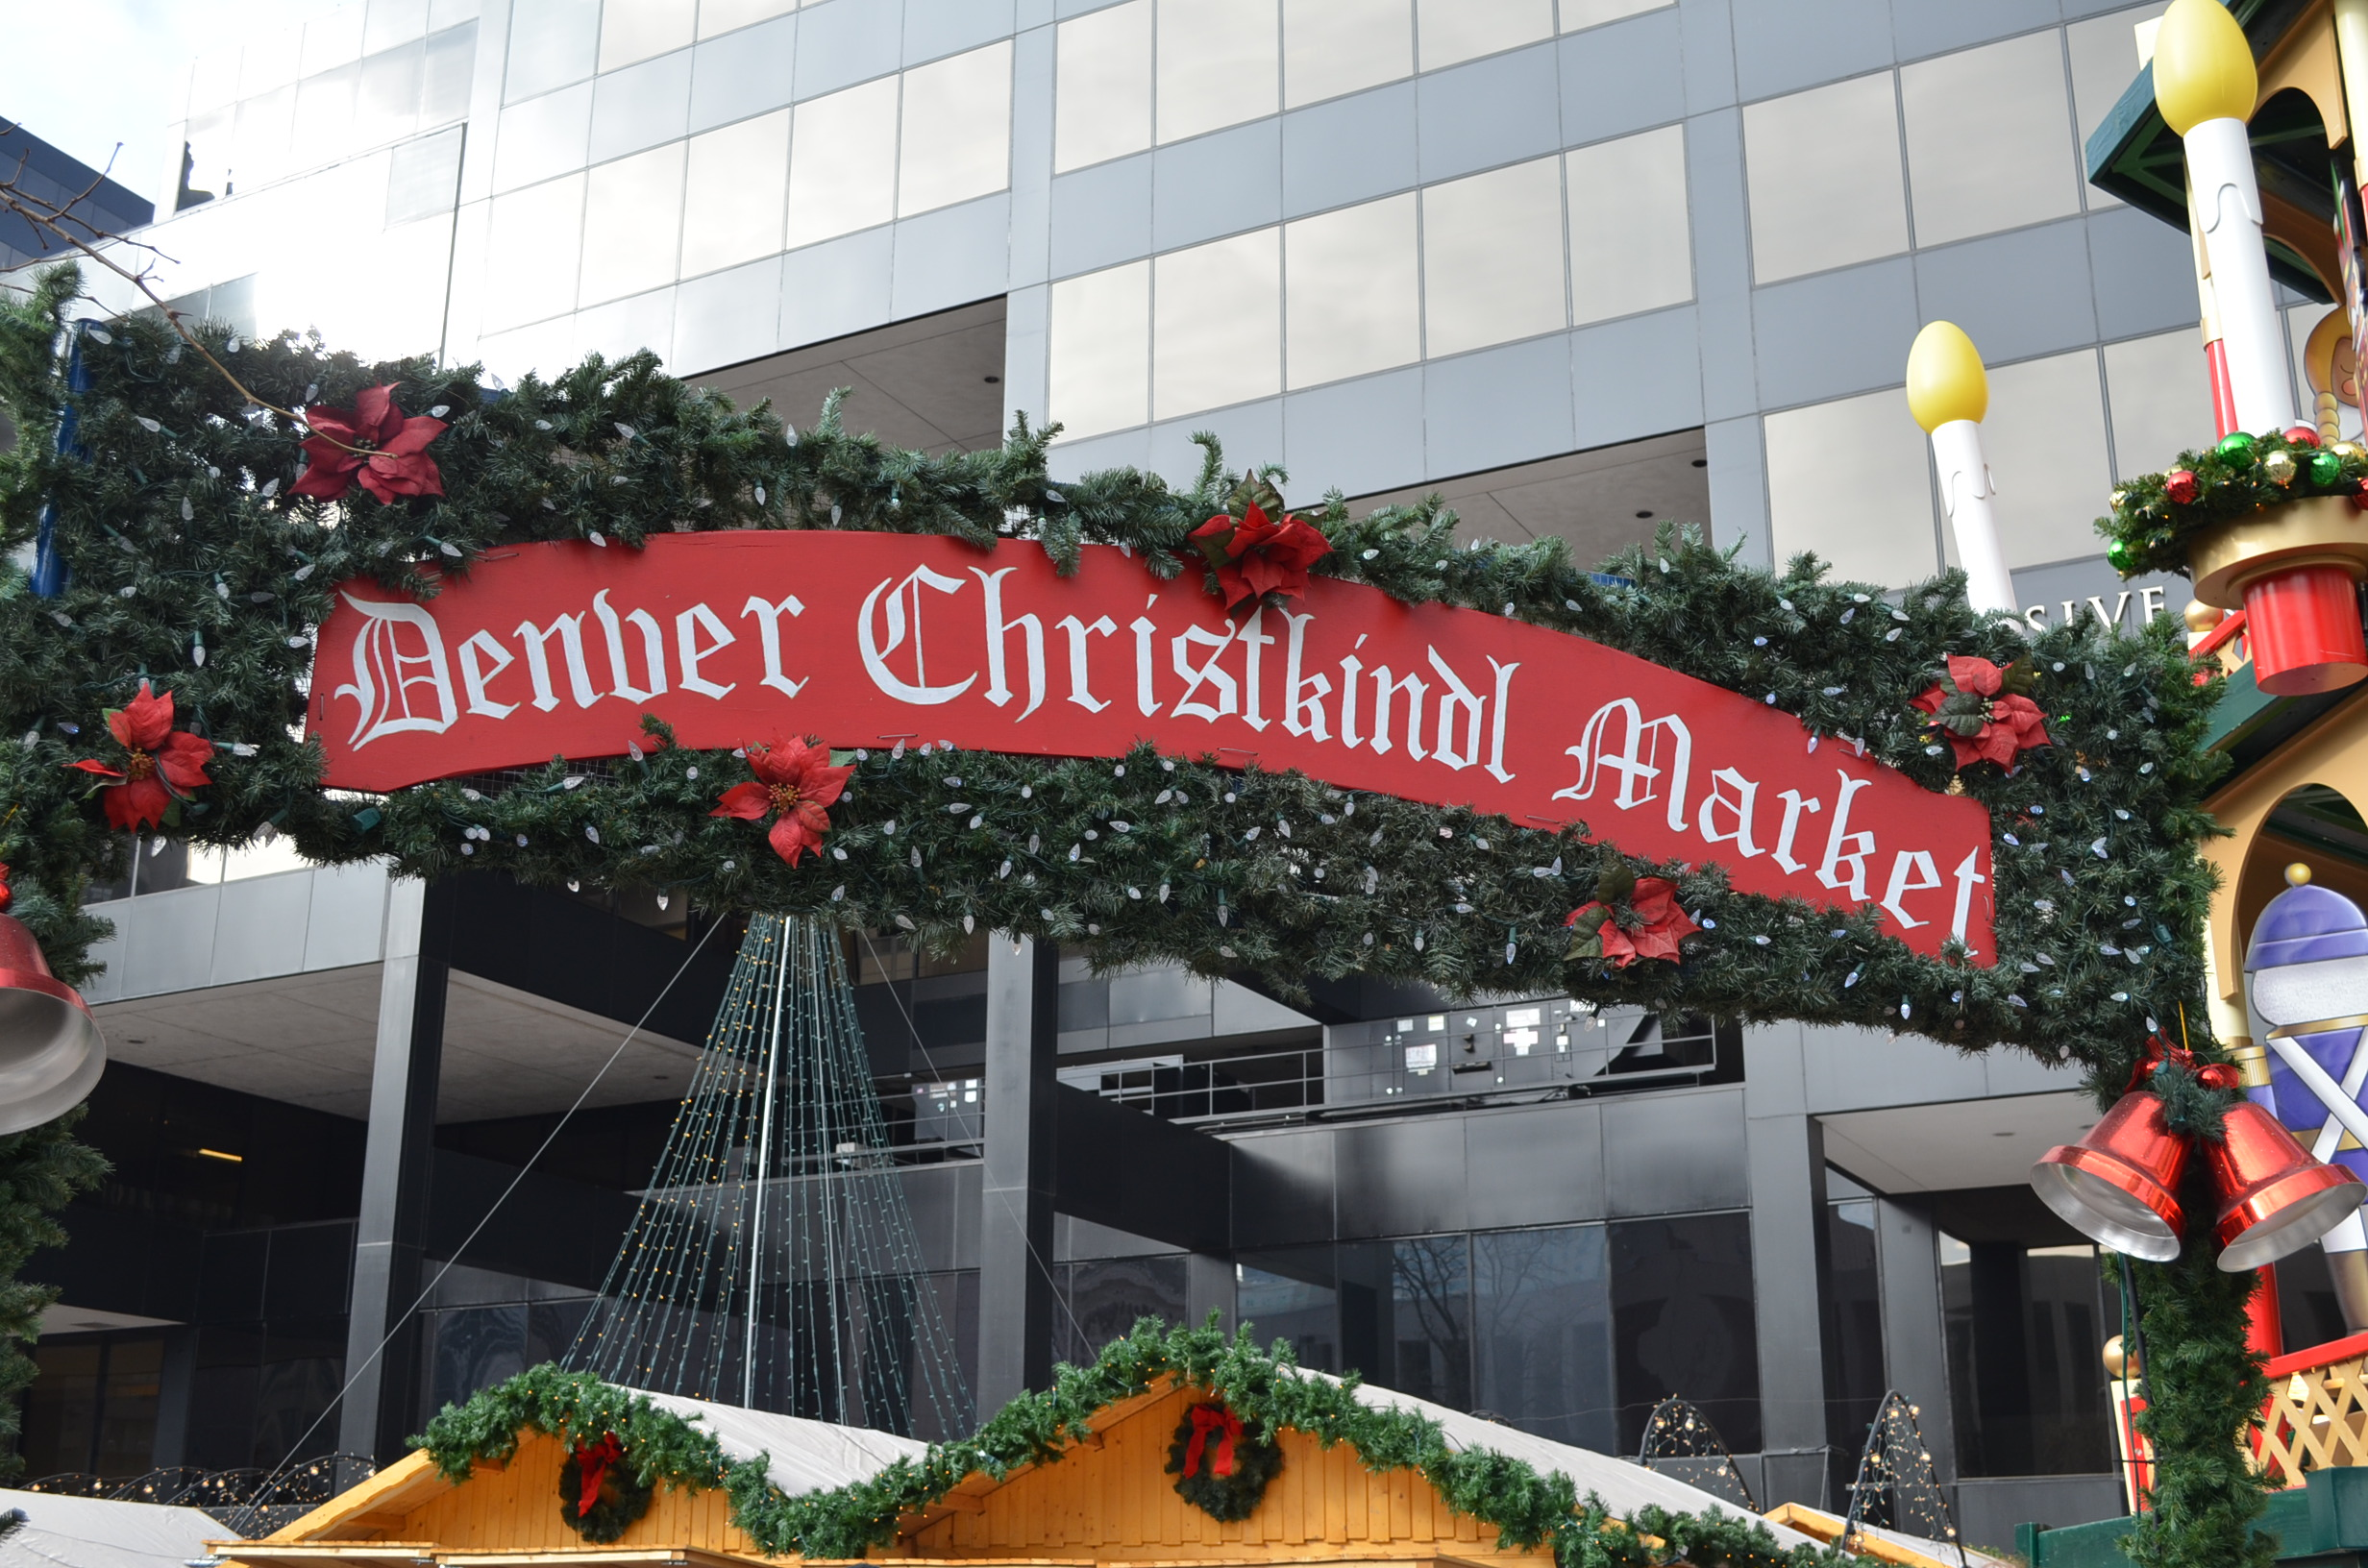 the denver christkindl market is an annual tradition